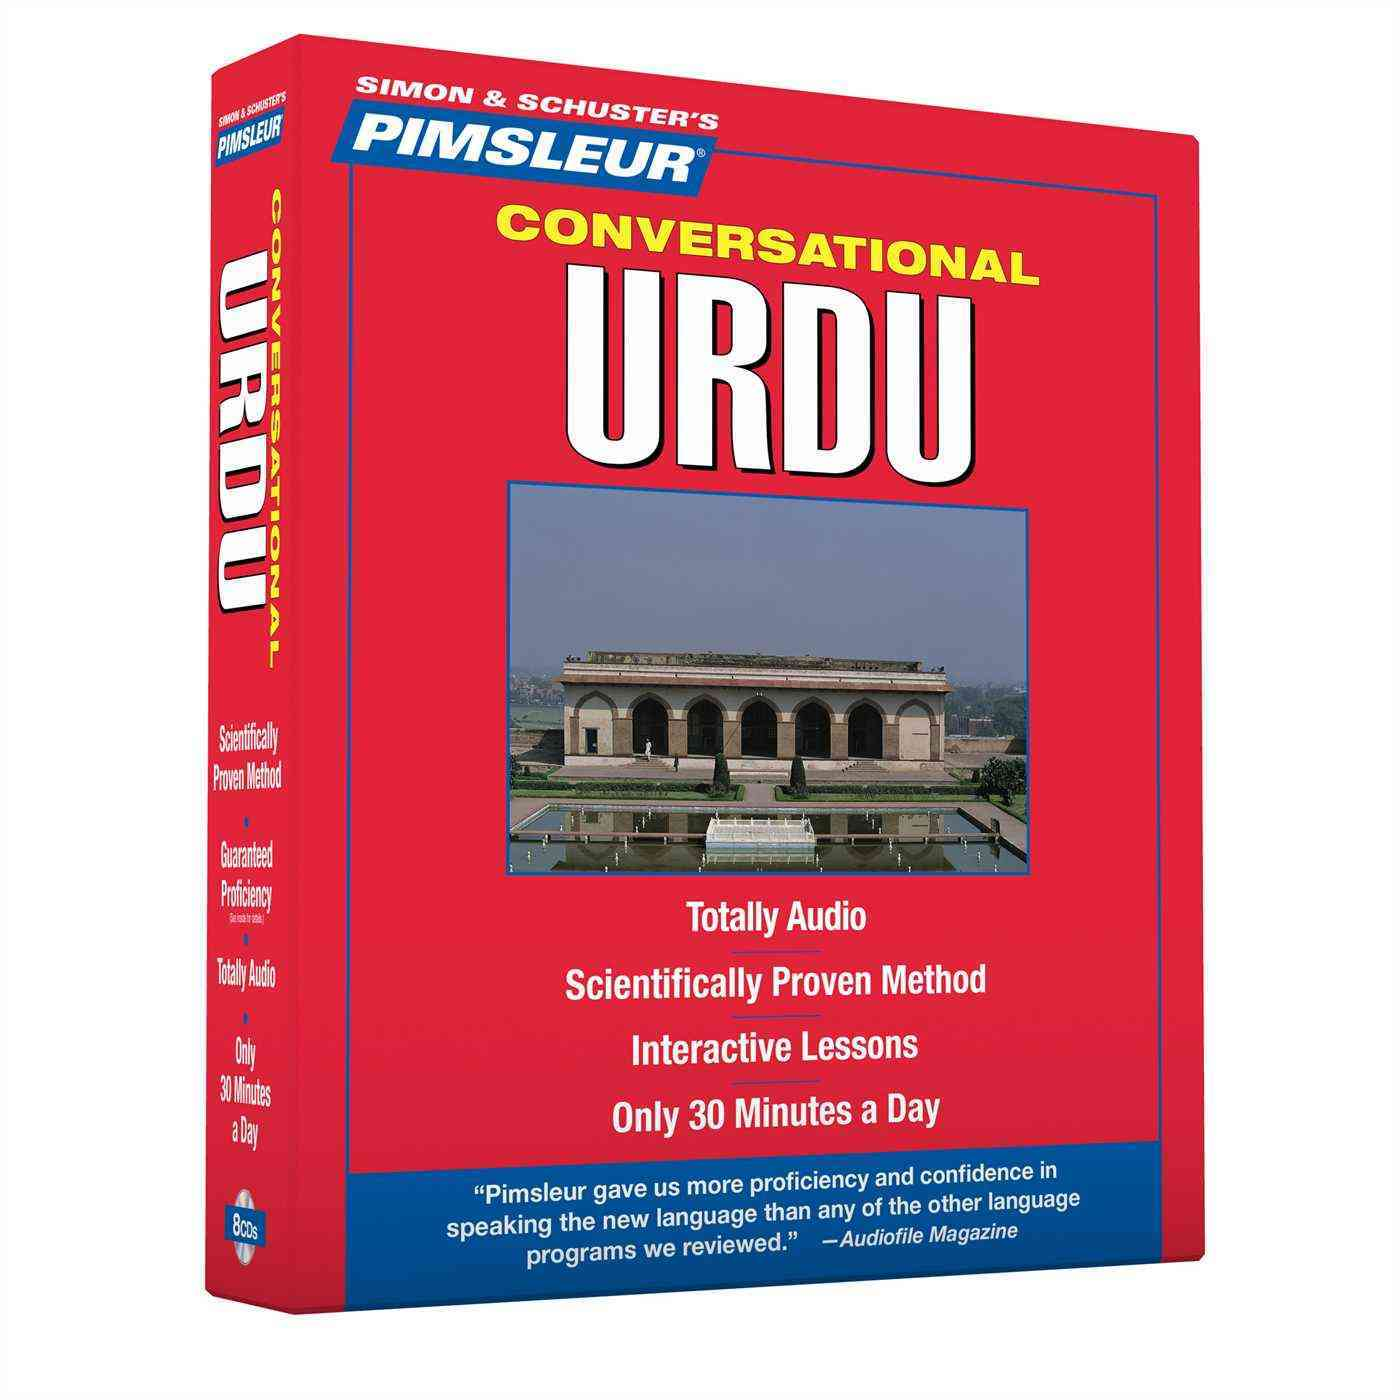 Urdu, Conversational: Totally Audio, Scientifically Proven Method, Interactive Lessons, Only 30 Minutes a Day (CD-Audio)